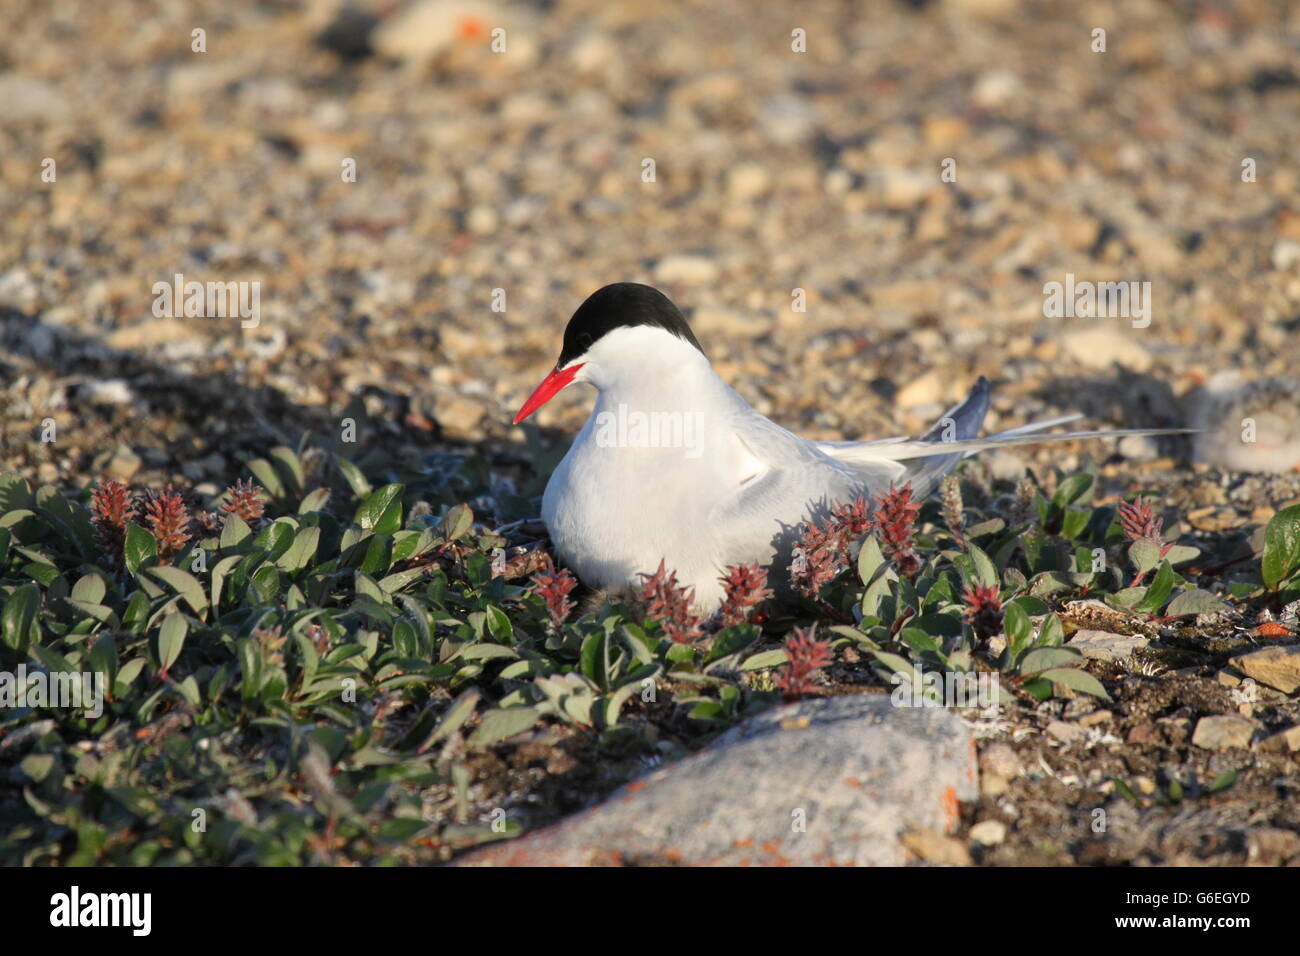 Female Arctic Tern  (Sterna paradisaea) on nest with hatchling nearby - Stock Image